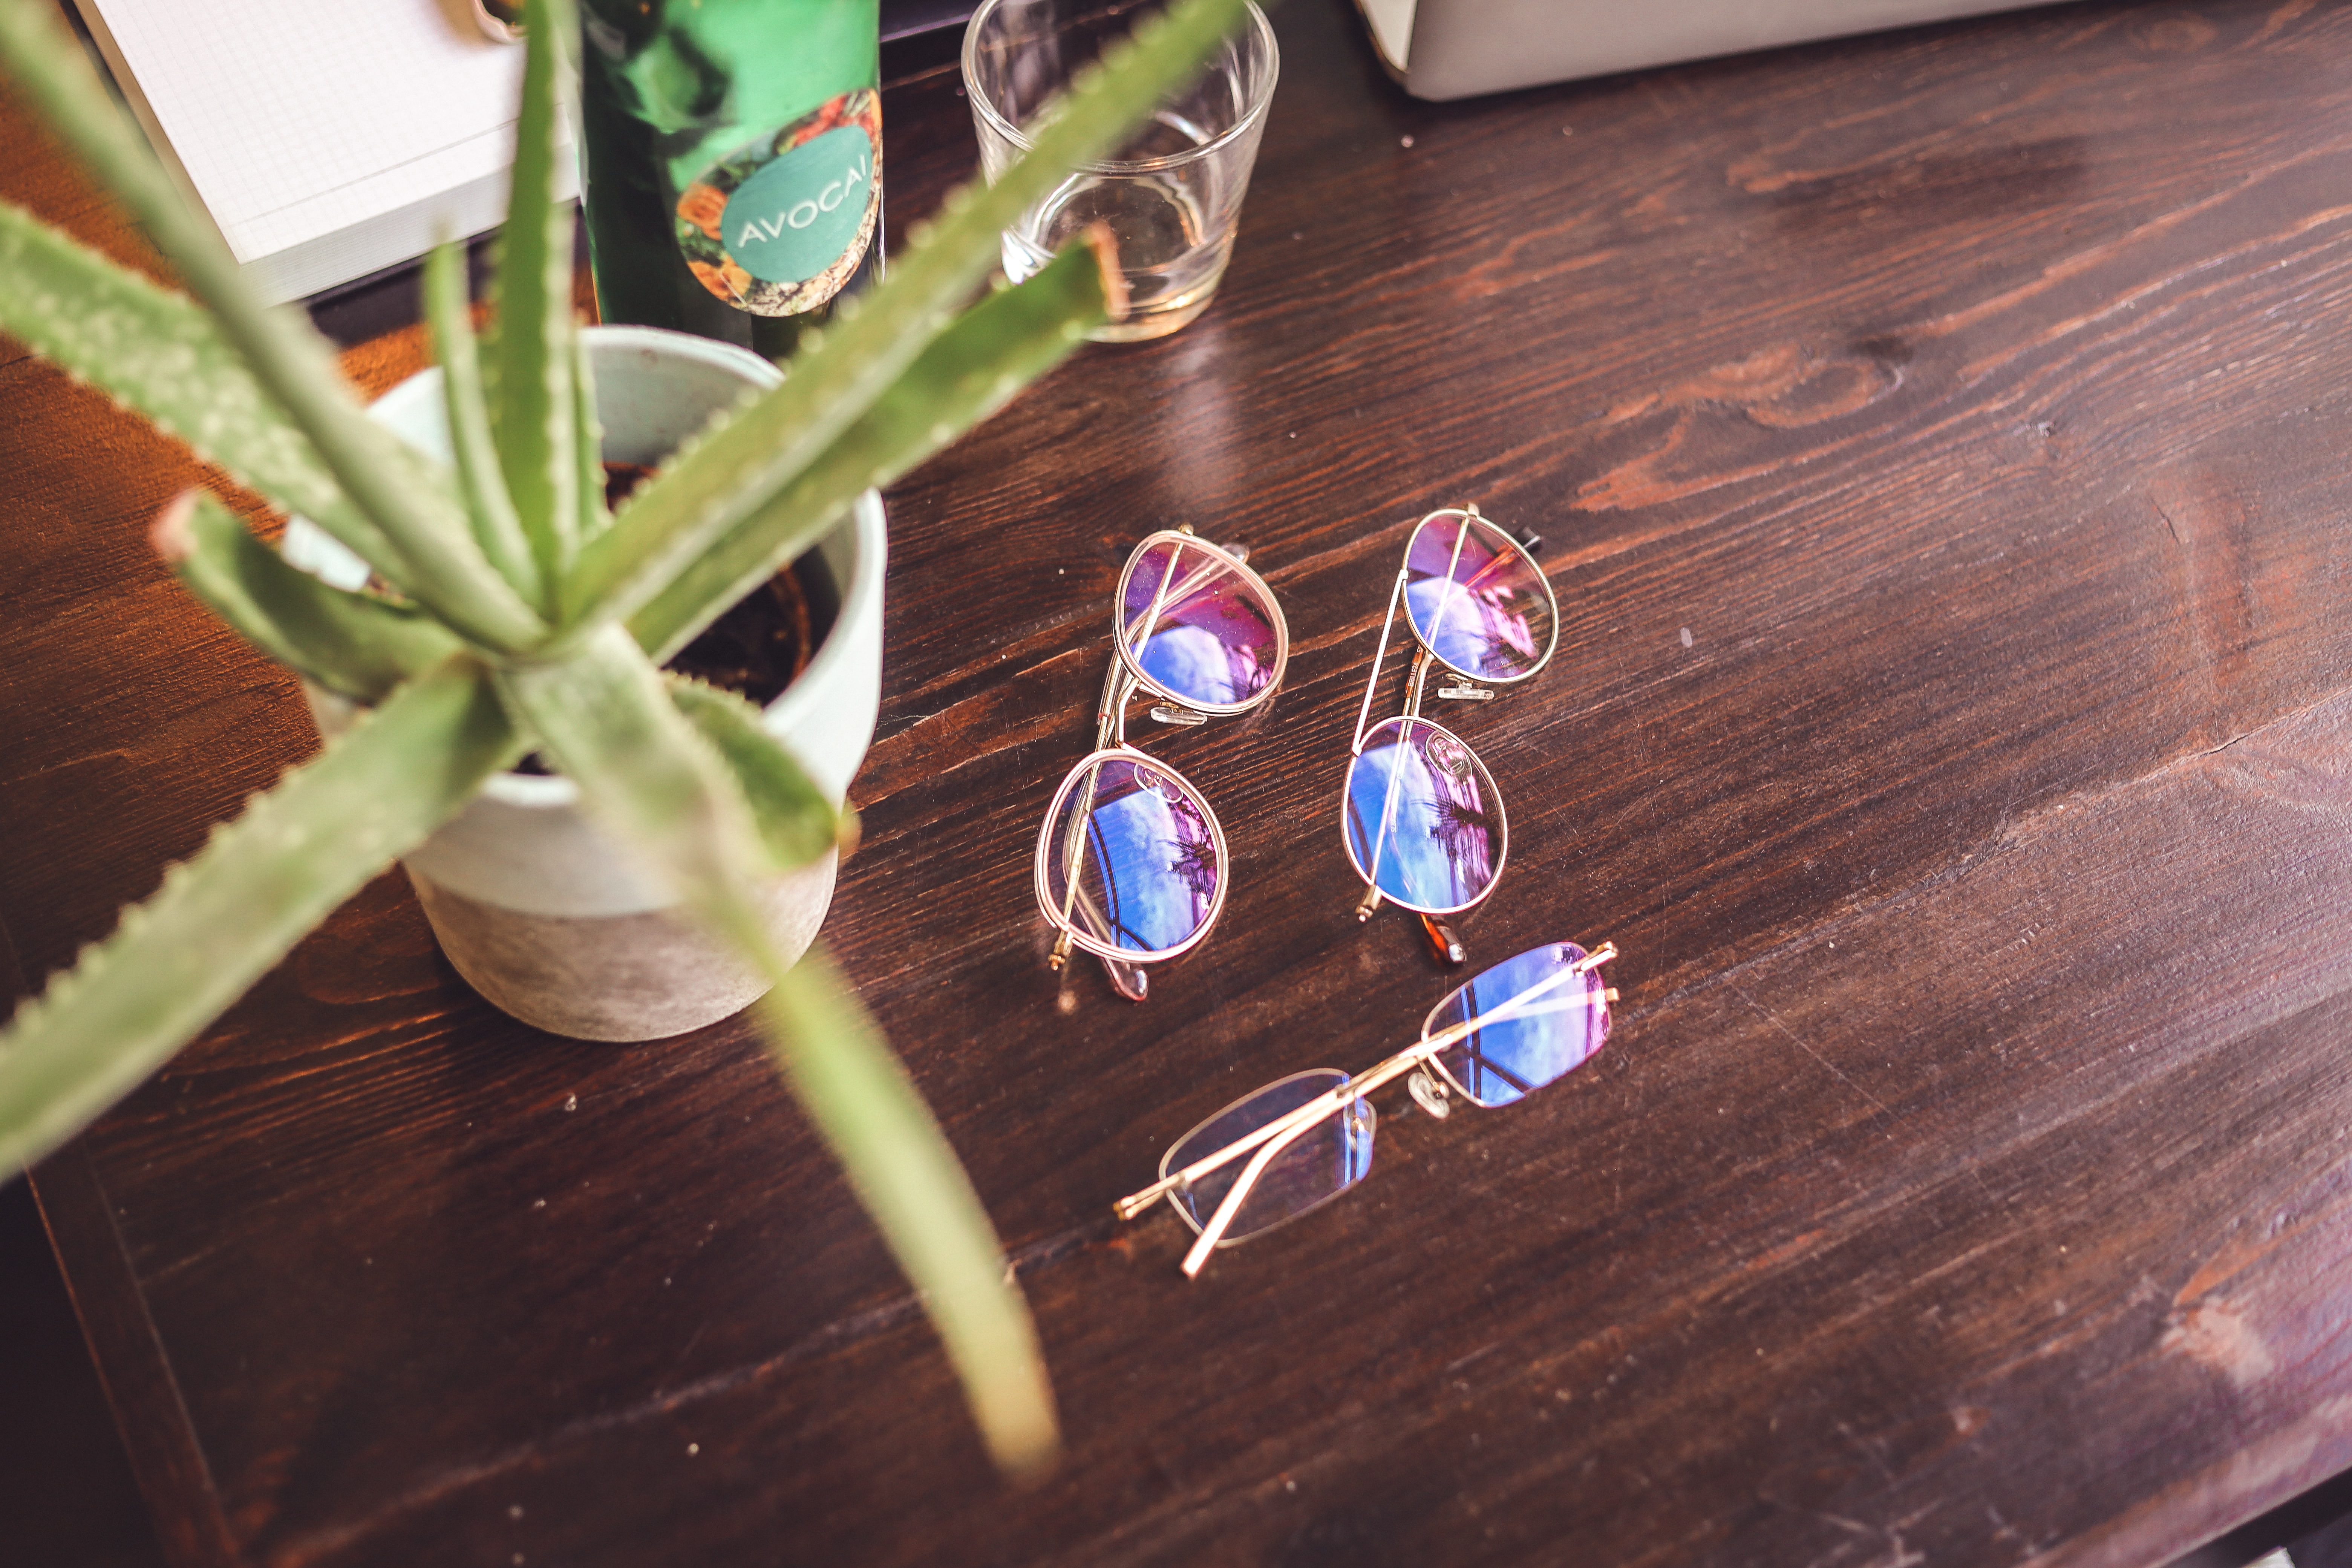 Lauralamode Brille24 Blogger Blog Berlin Digital Relax Blaufilter Brille Glasses Digital Relax Beschichtung Berlin Munich Fashion Fashionblogger2